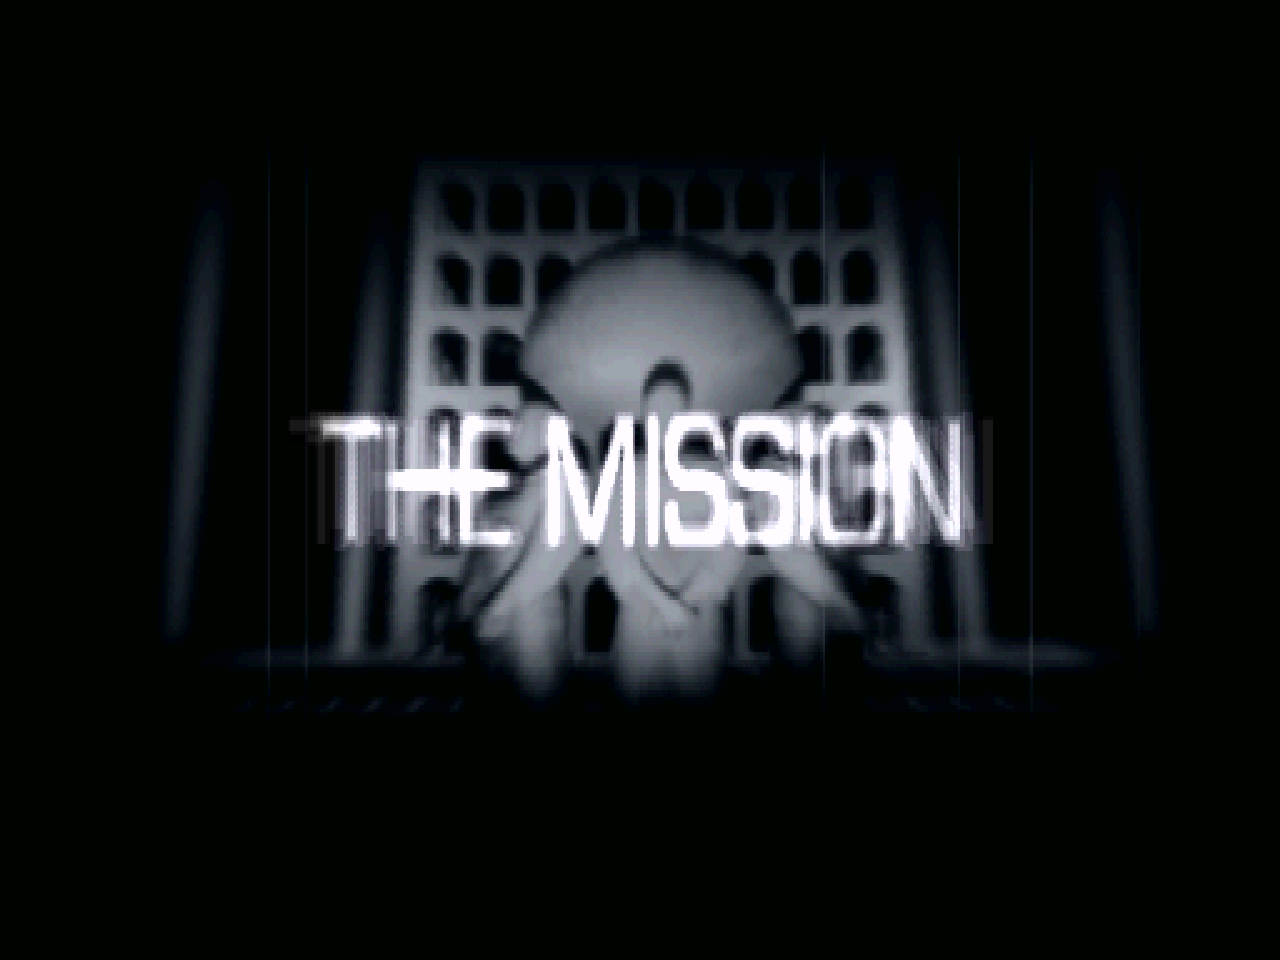 https://s3.eu-west-3.amazonaws.com/games.anthony-dessalles.com/The Mission PS1 2020 - Screenshots/The Mission-201126-195246.png